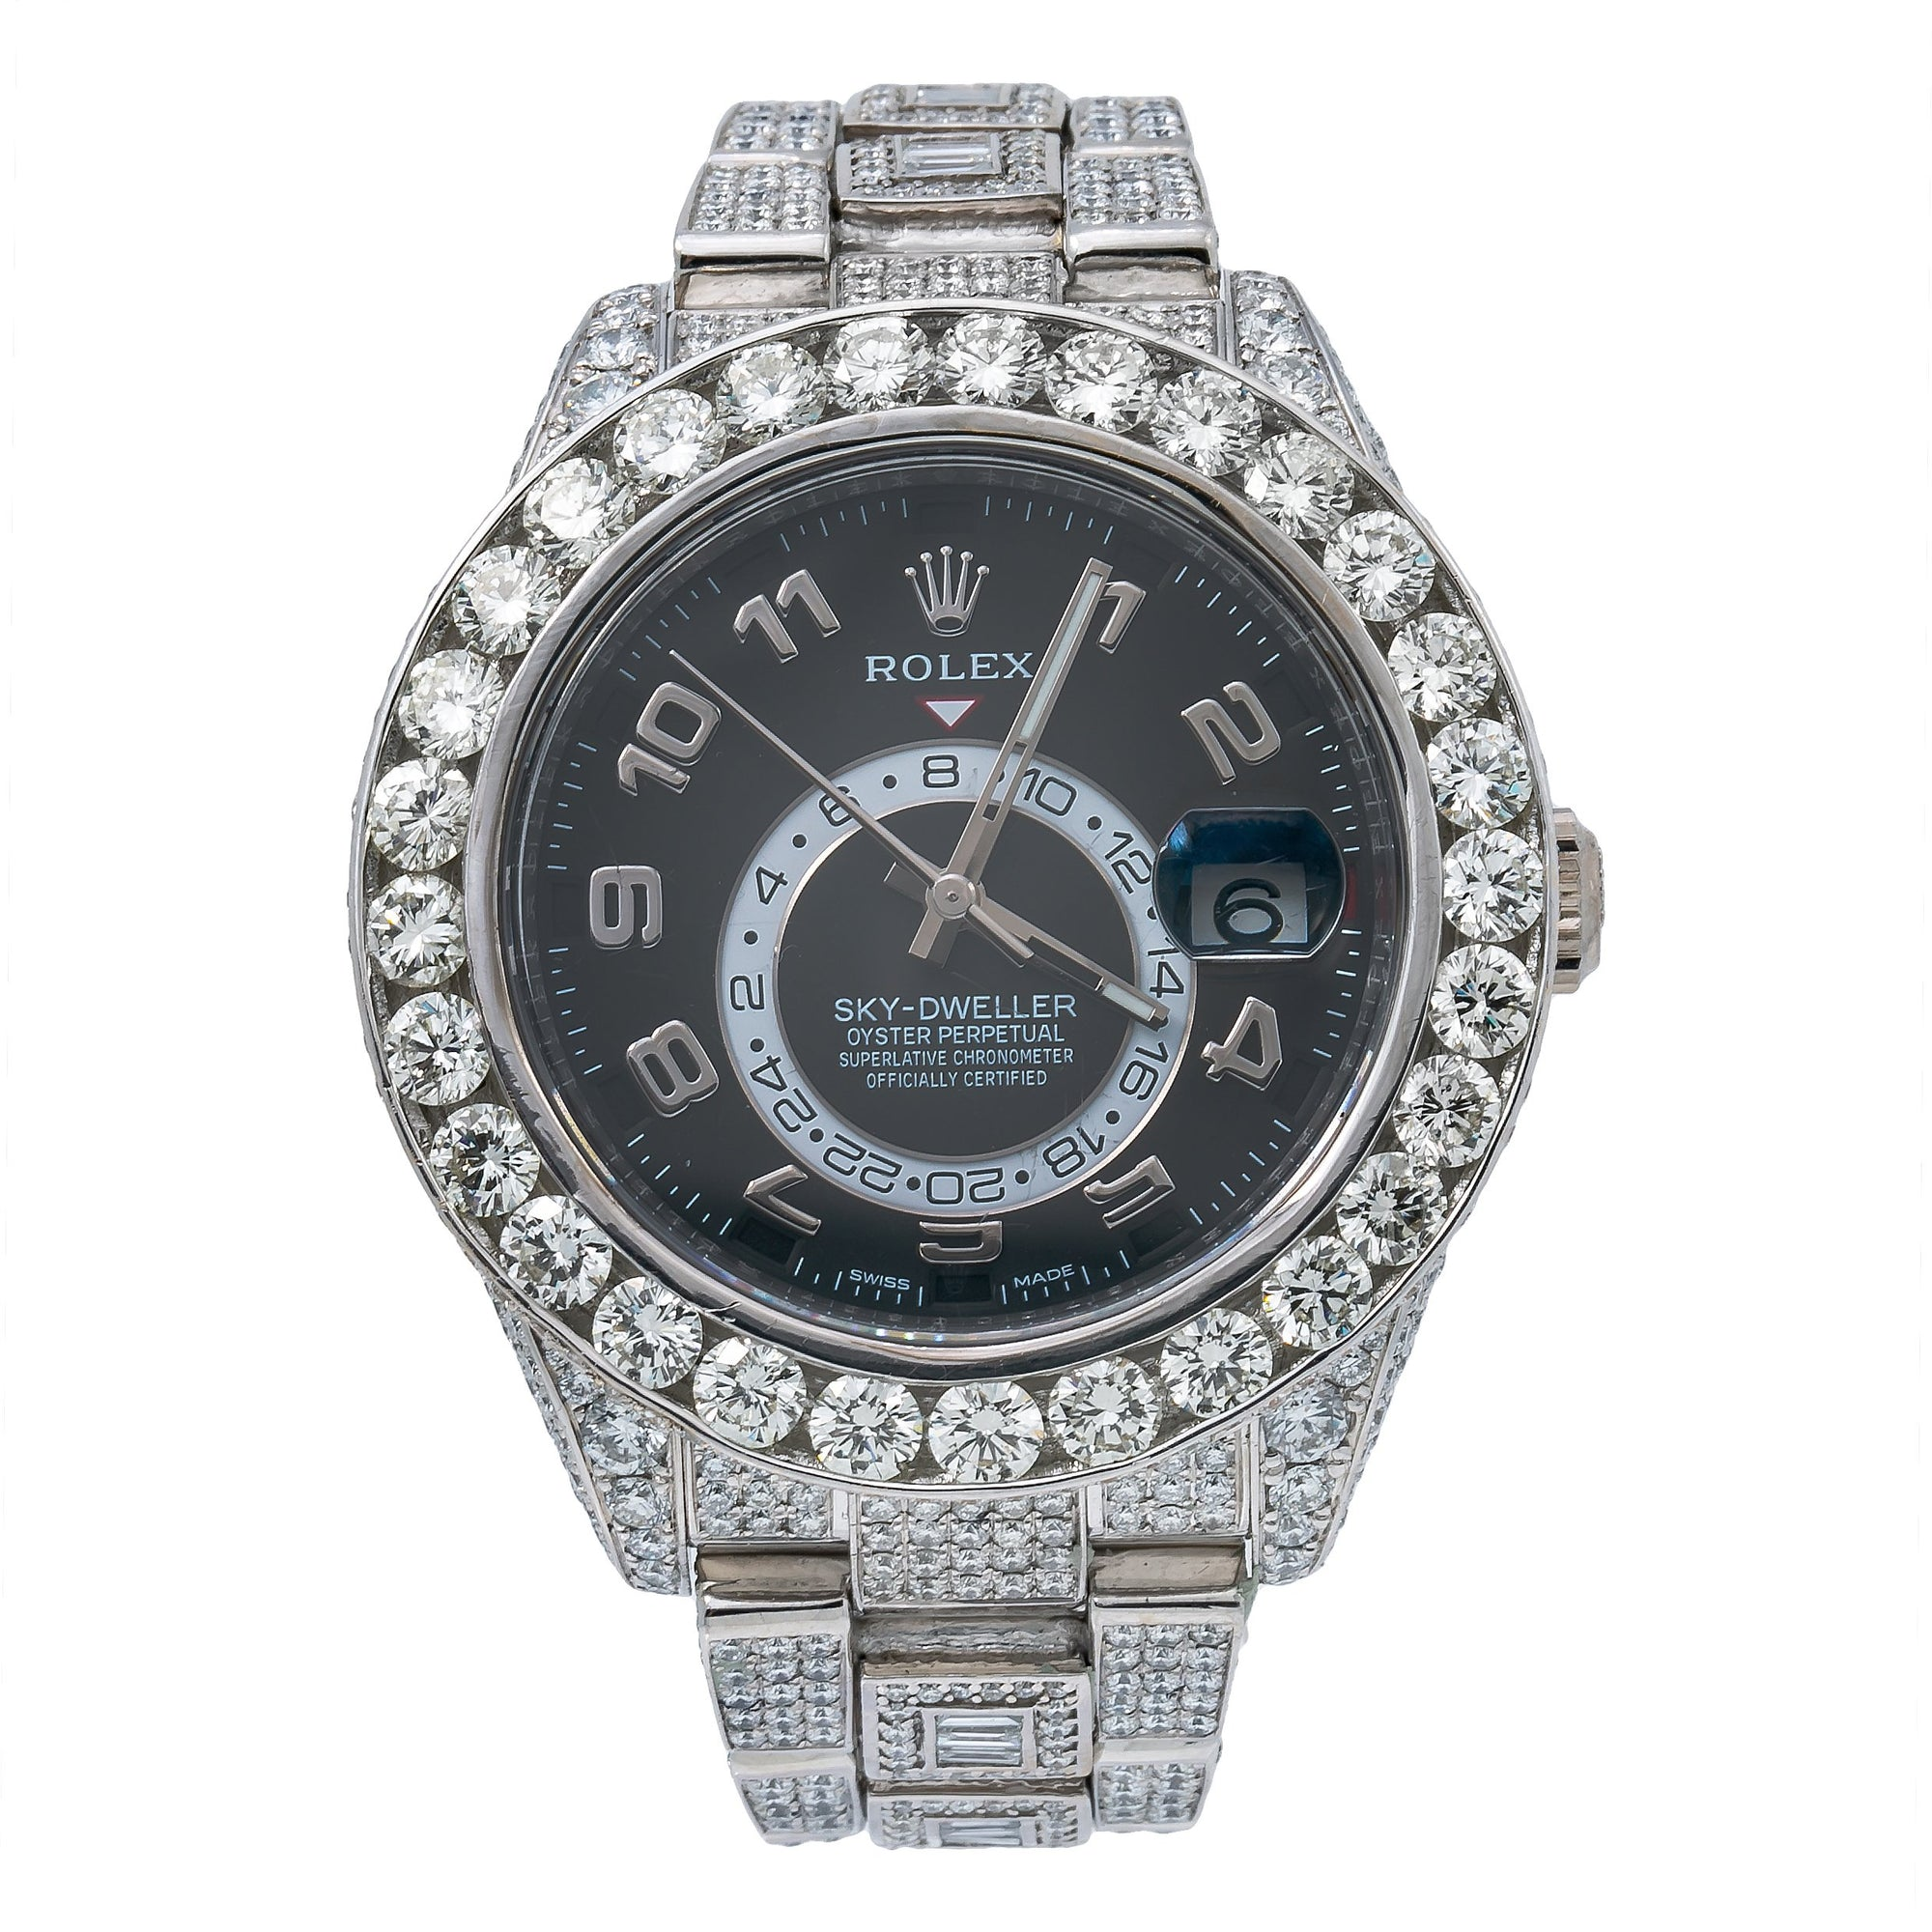 Rolex Sky-Dweller 326939 42MM Black Dial With 26.22 CT Diamonds